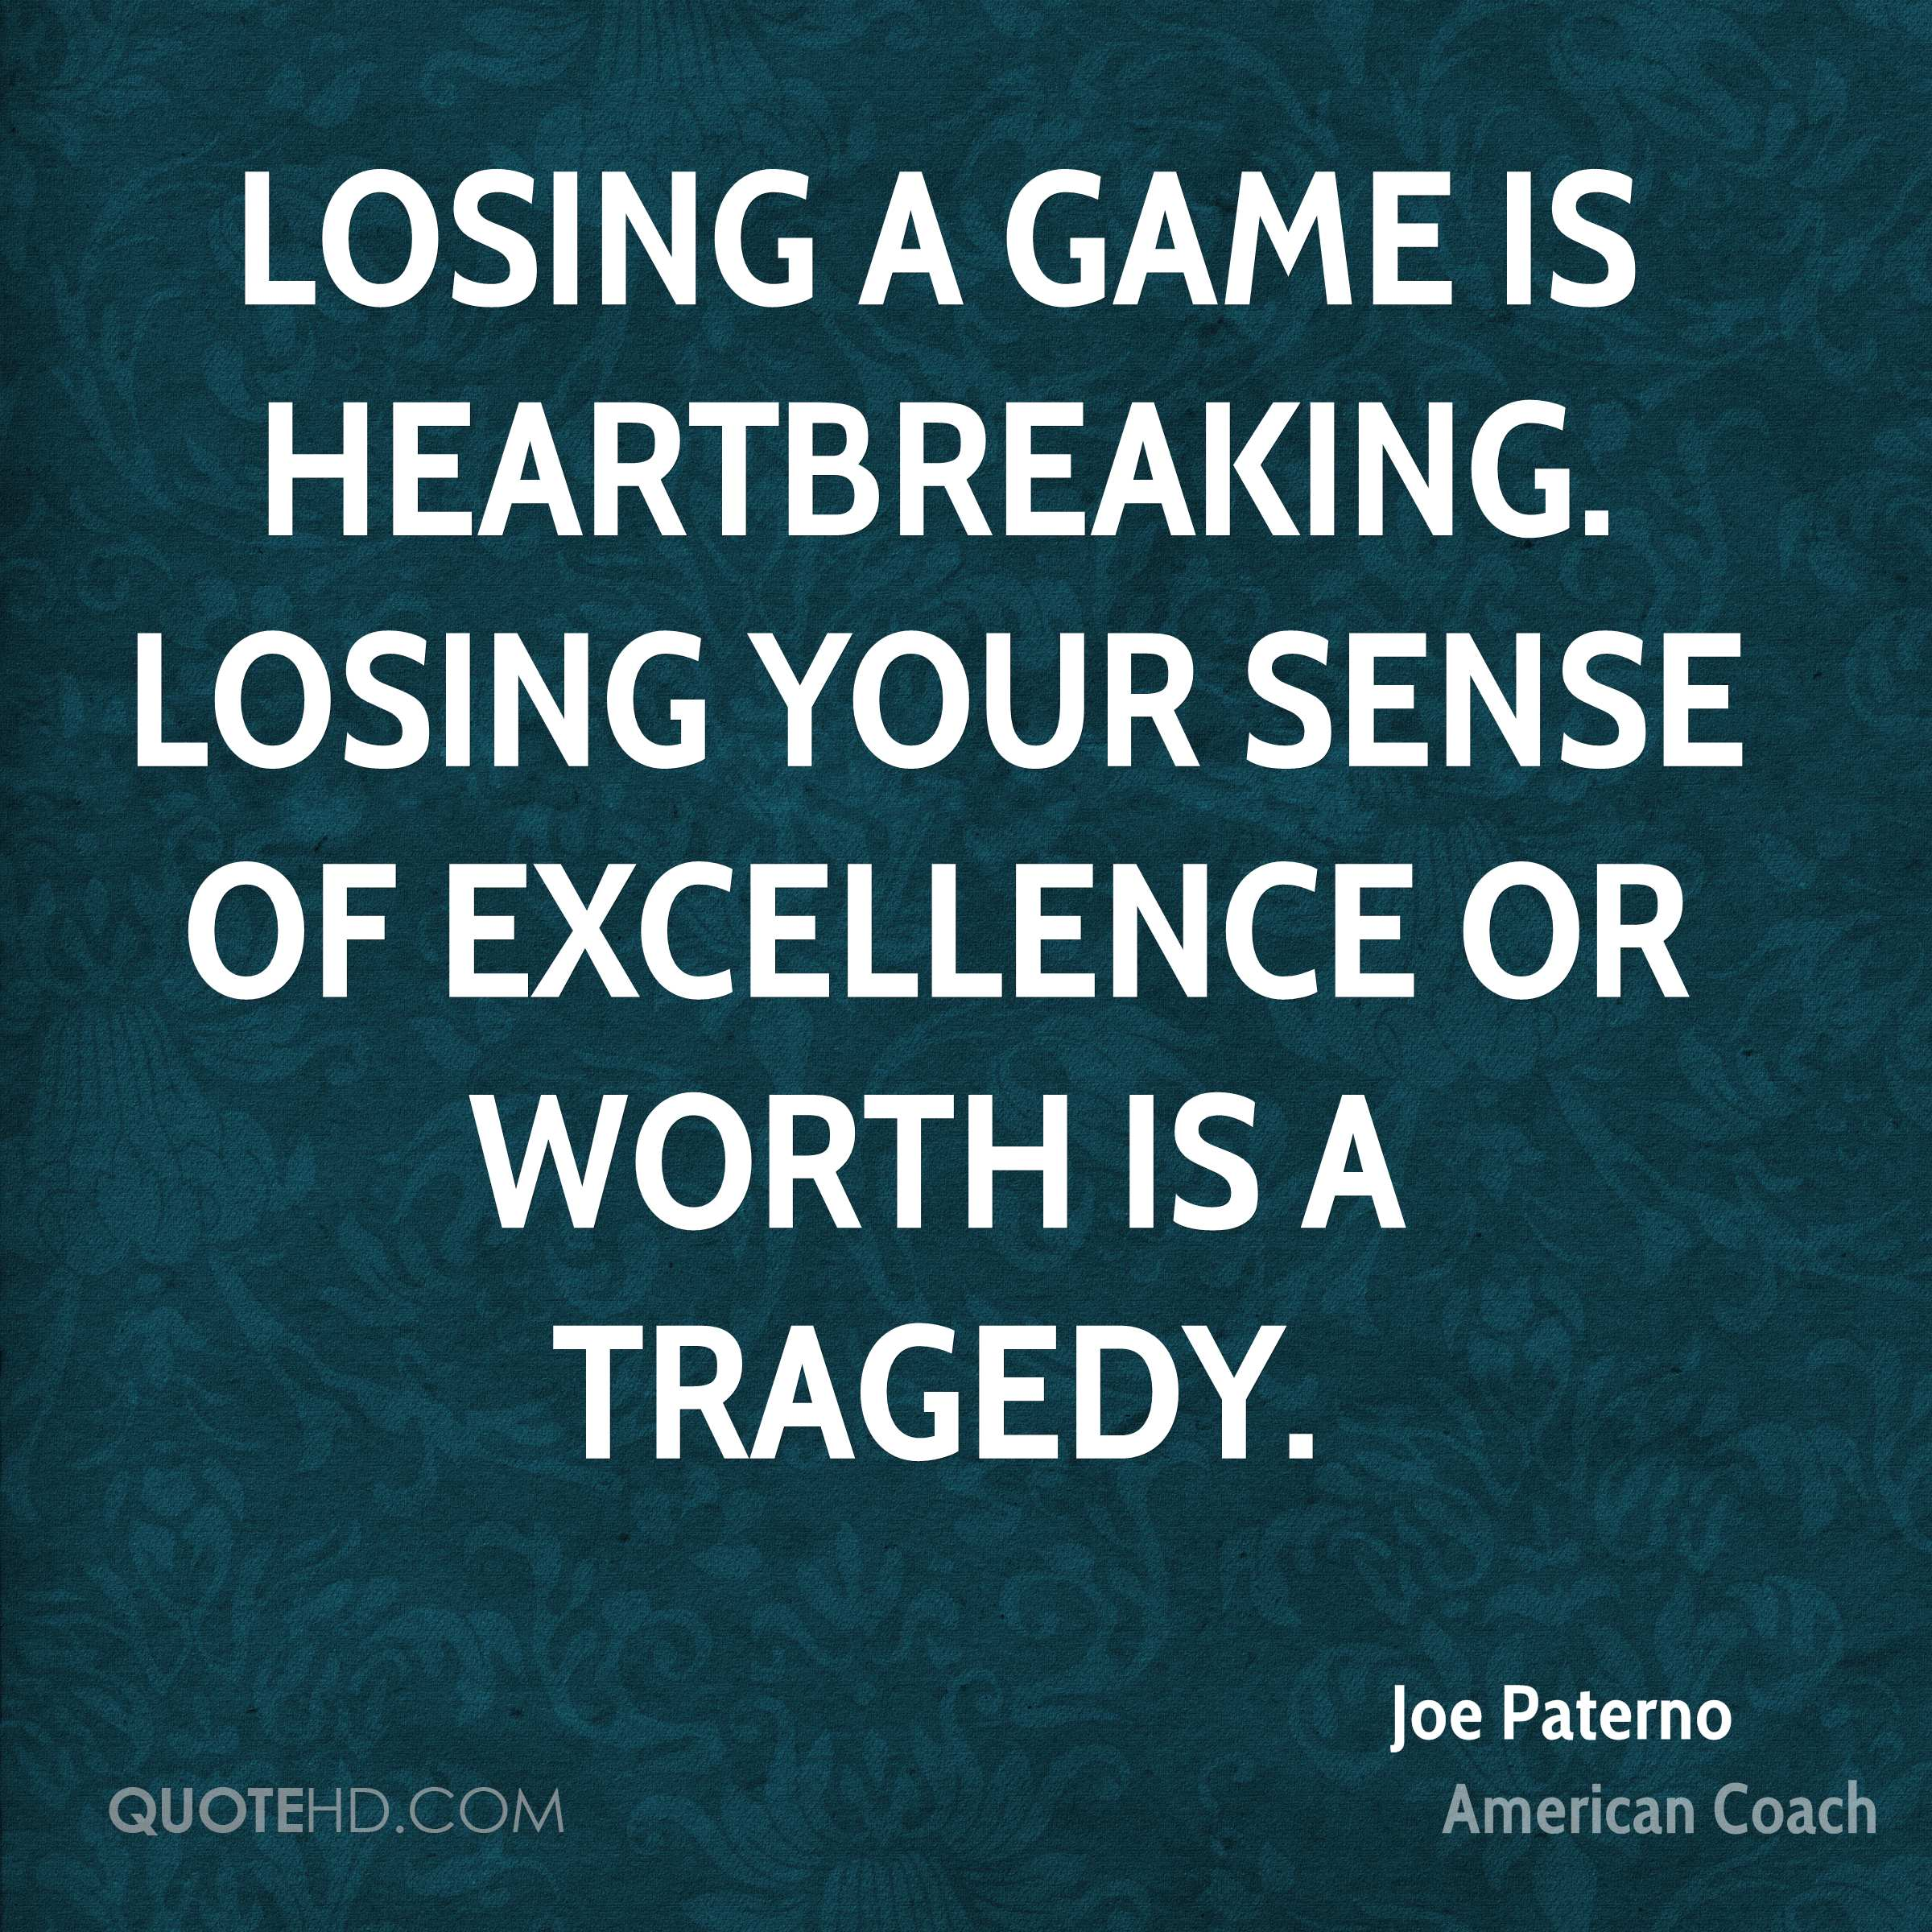 Losing a game is heartbreaking. Losing your sense of excellence or worth is a tragedy.